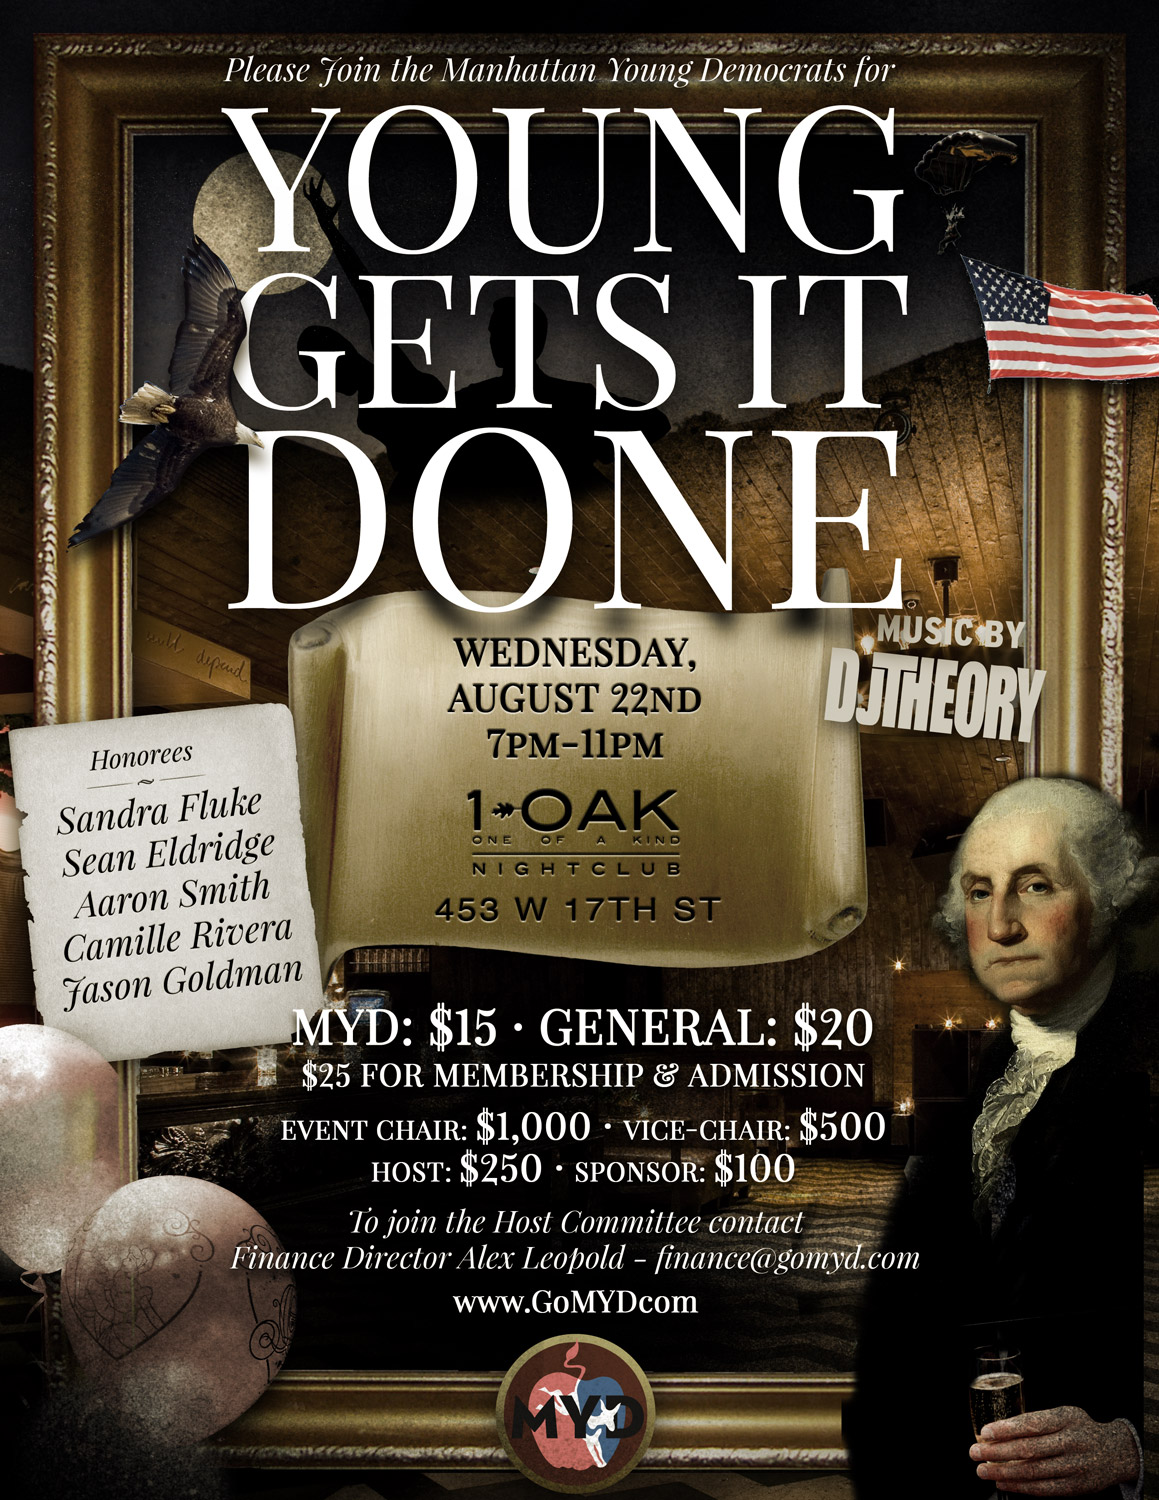 young_gets_done_2012_flyer_nyreblog_com_.jpg